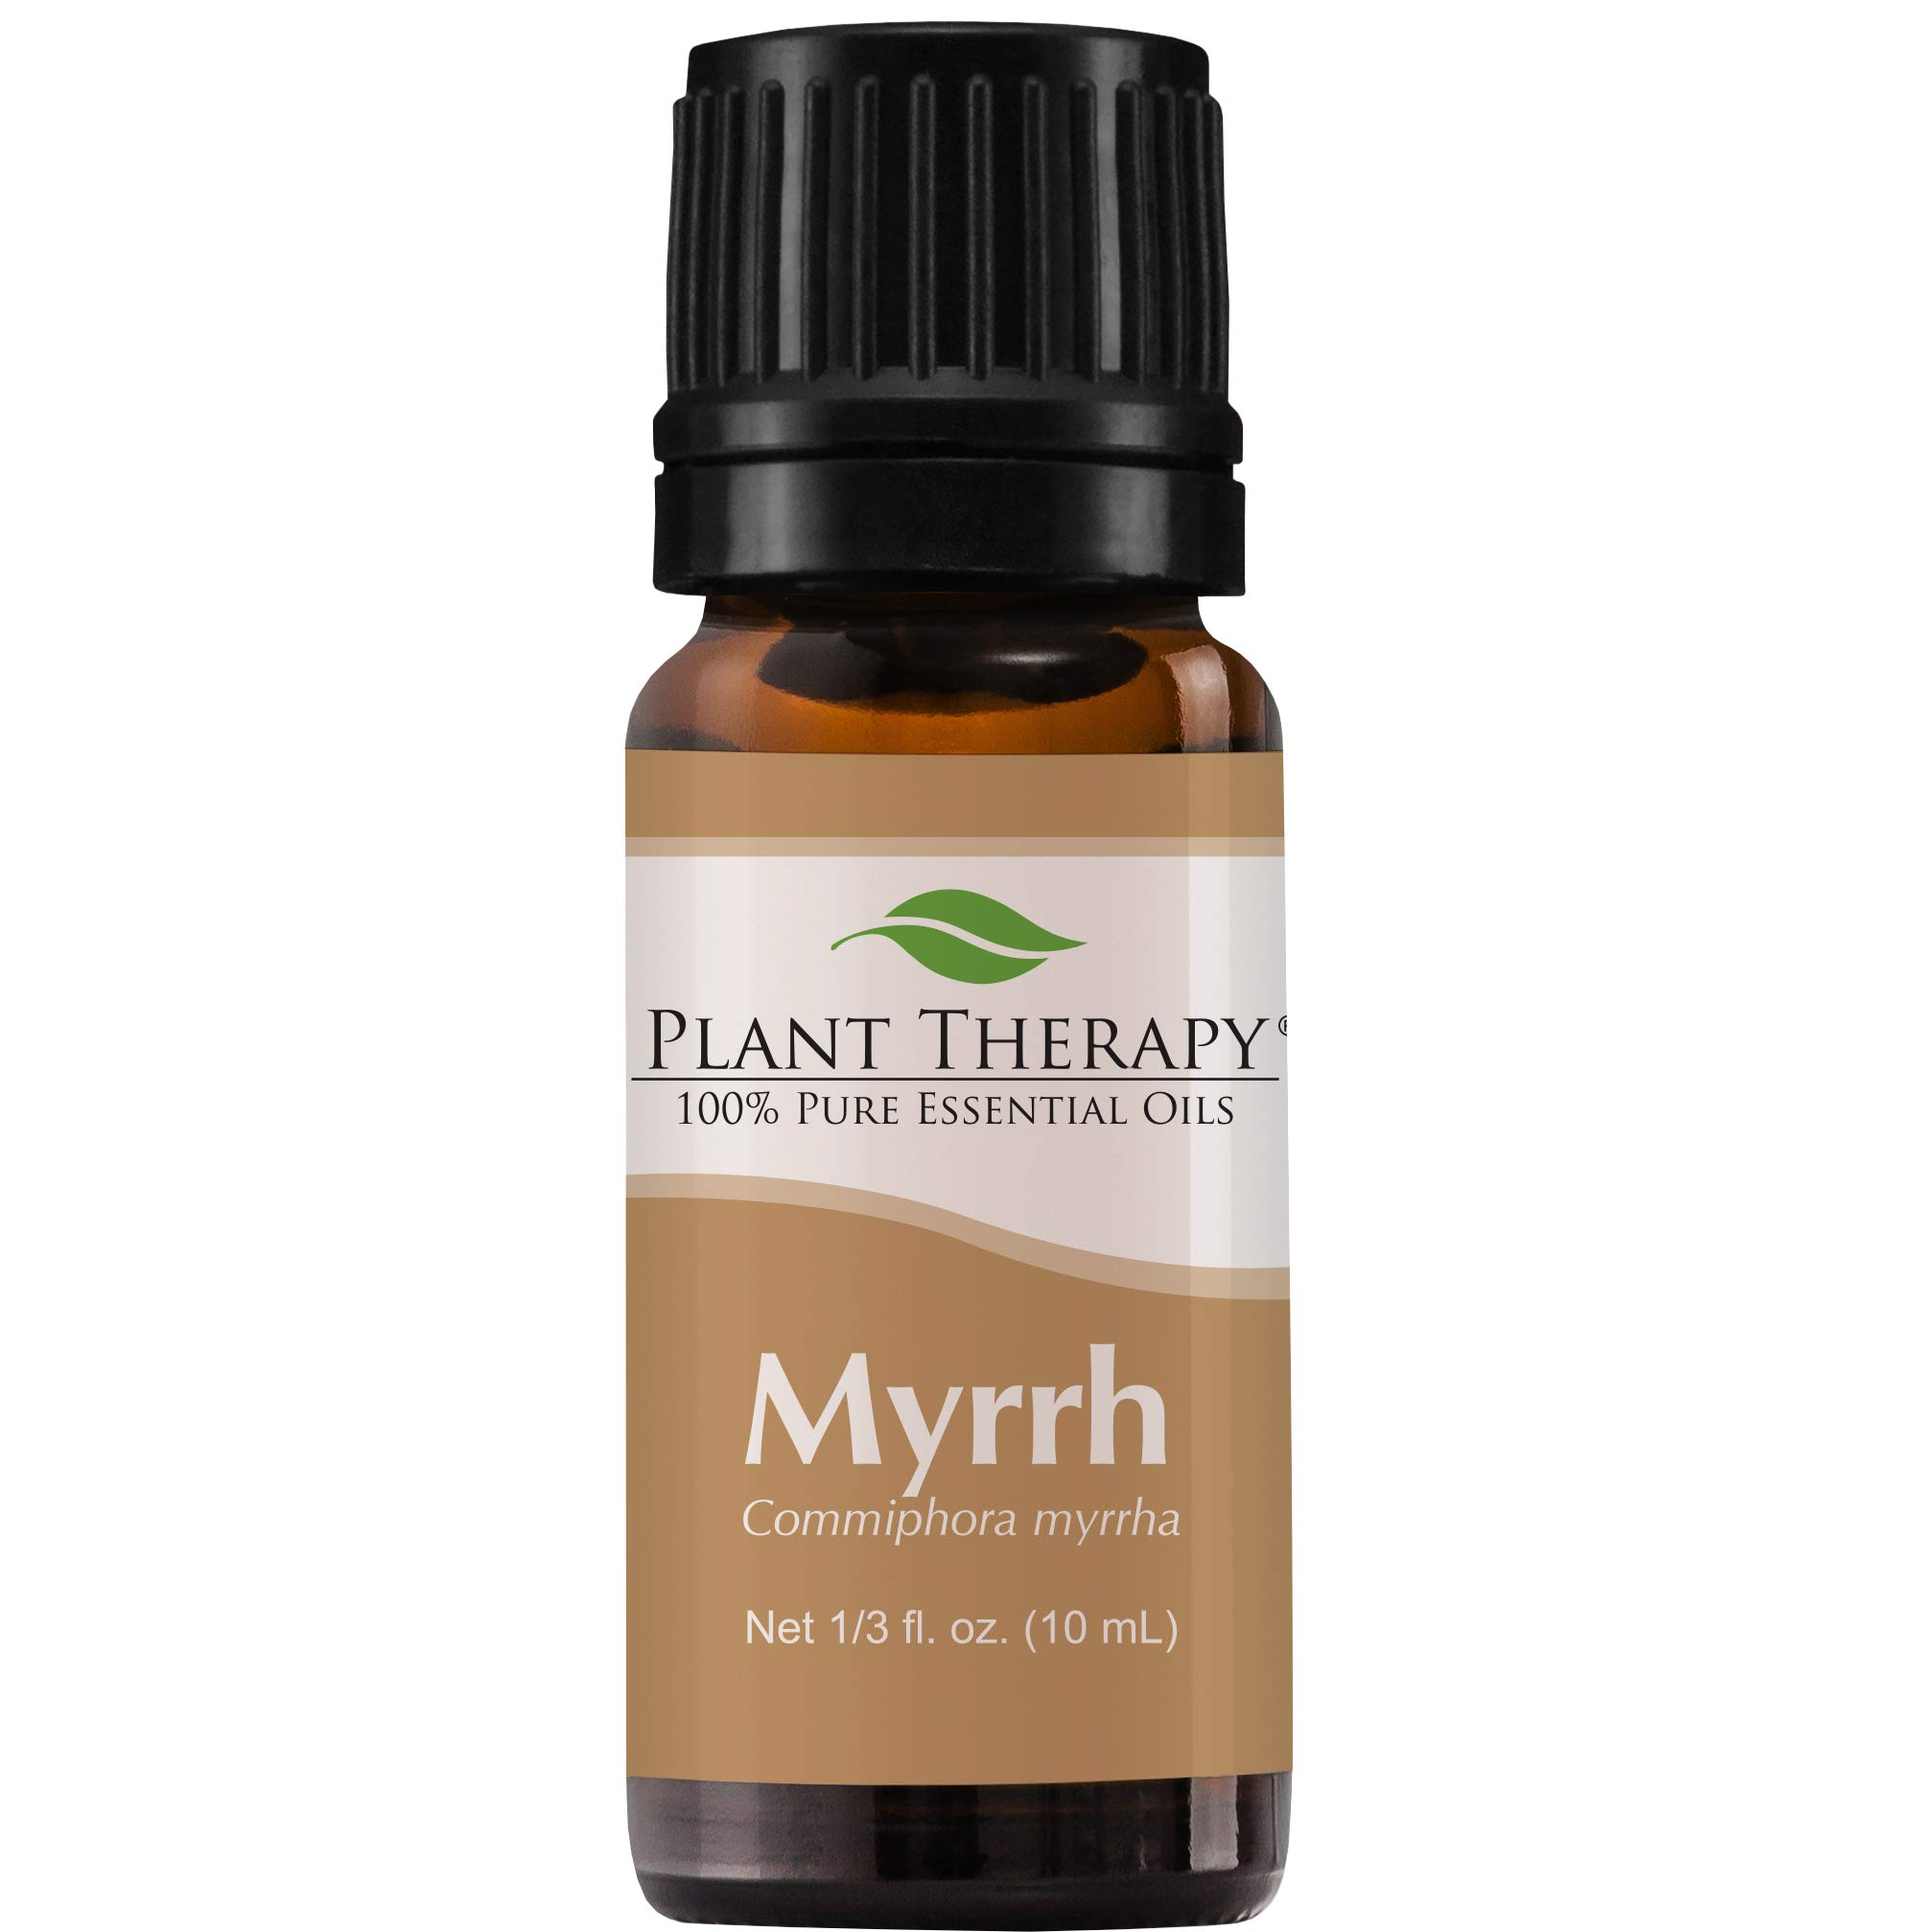 Plant Therapy Myrrh Essential Oil 100% Pure, Undiluted, Natural Aromatherapy, Therapeutic Grade 10 mL (1/3 oz)